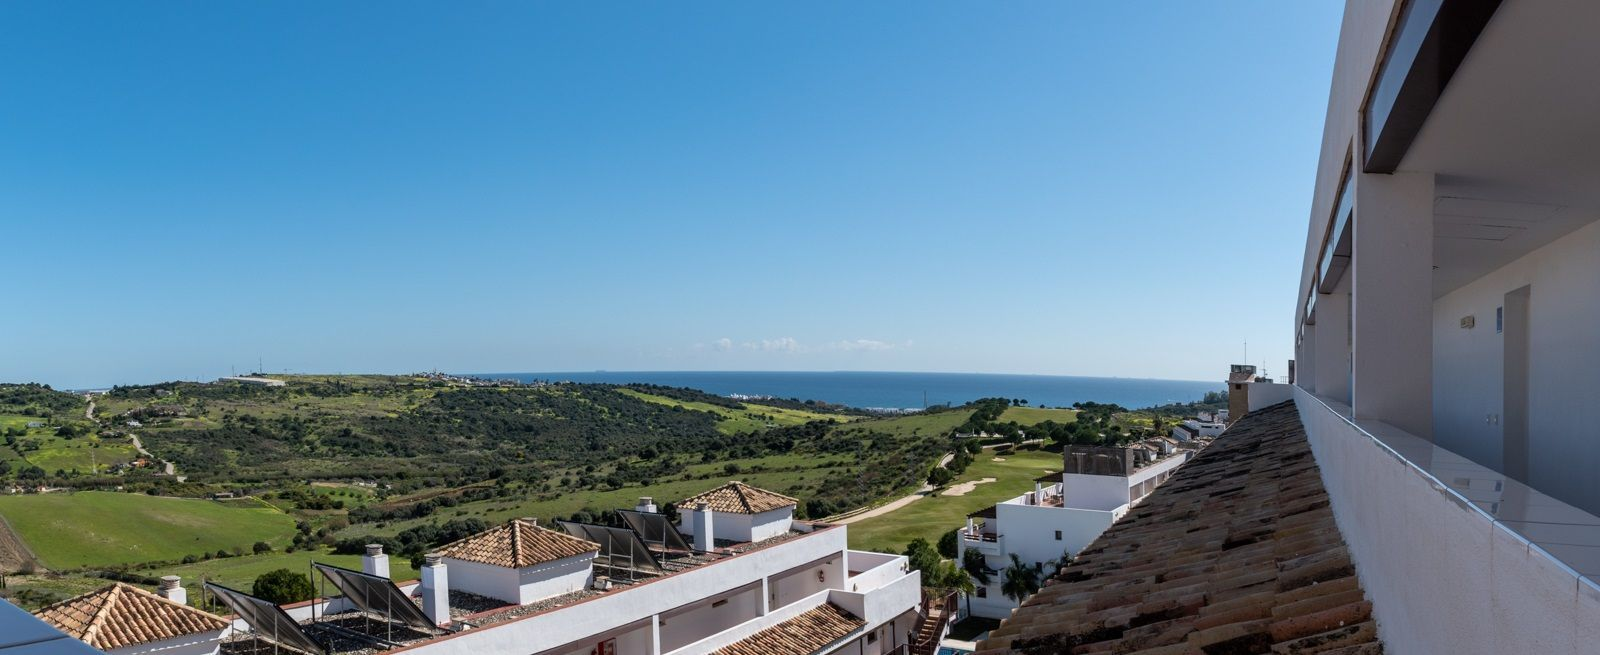 Holiday penthouses investment in Estepona